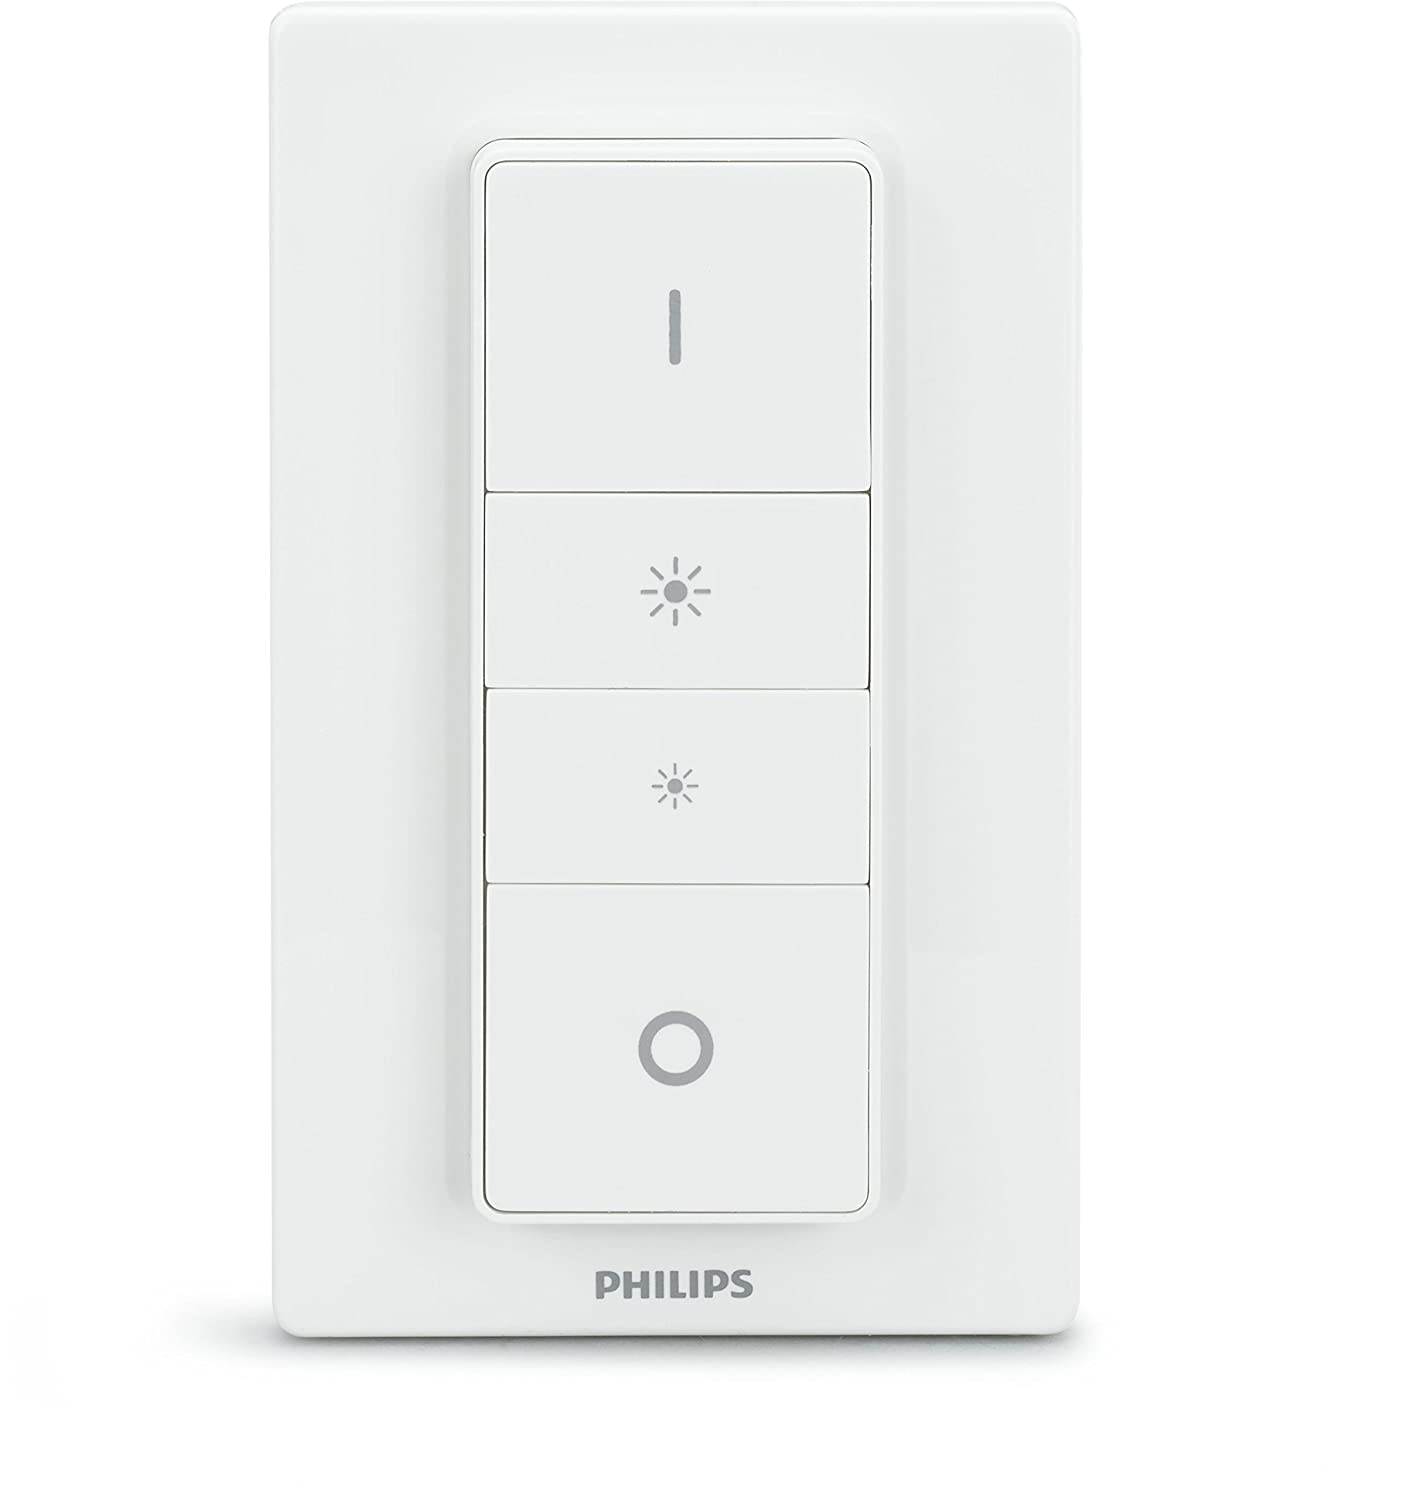 Philips Hue Wireless Dimming Schalter, komfortabel dimmen ohne ...